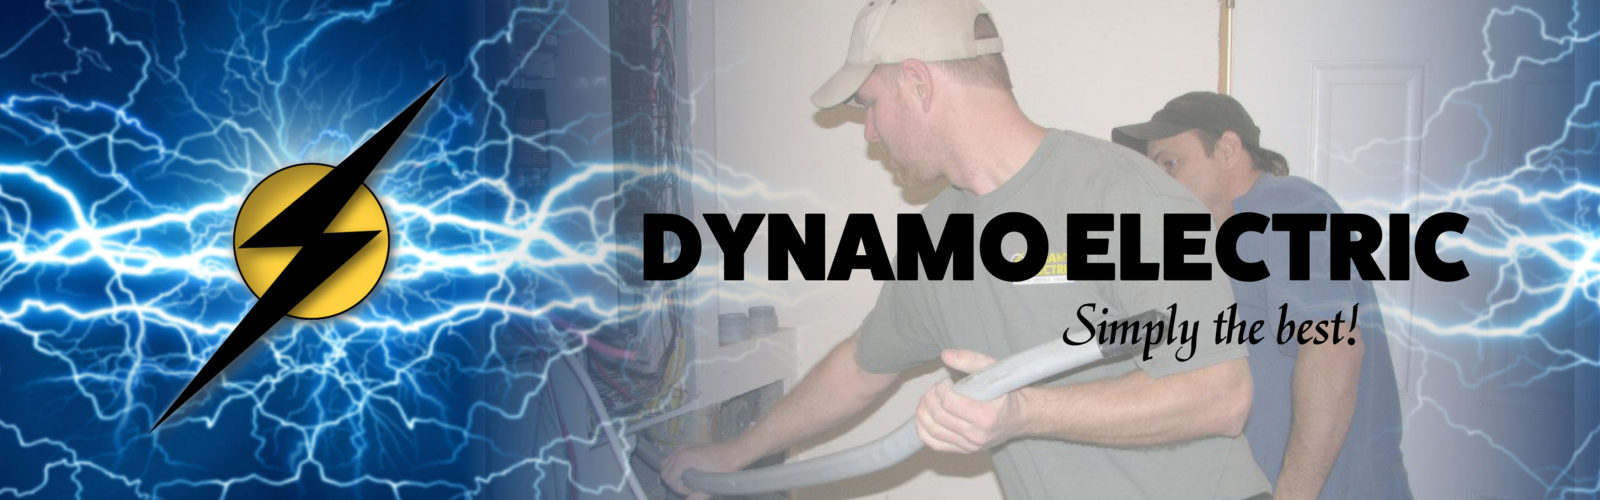 Dynamo Electric - Top electricians in the Williamsburg area of Virginia